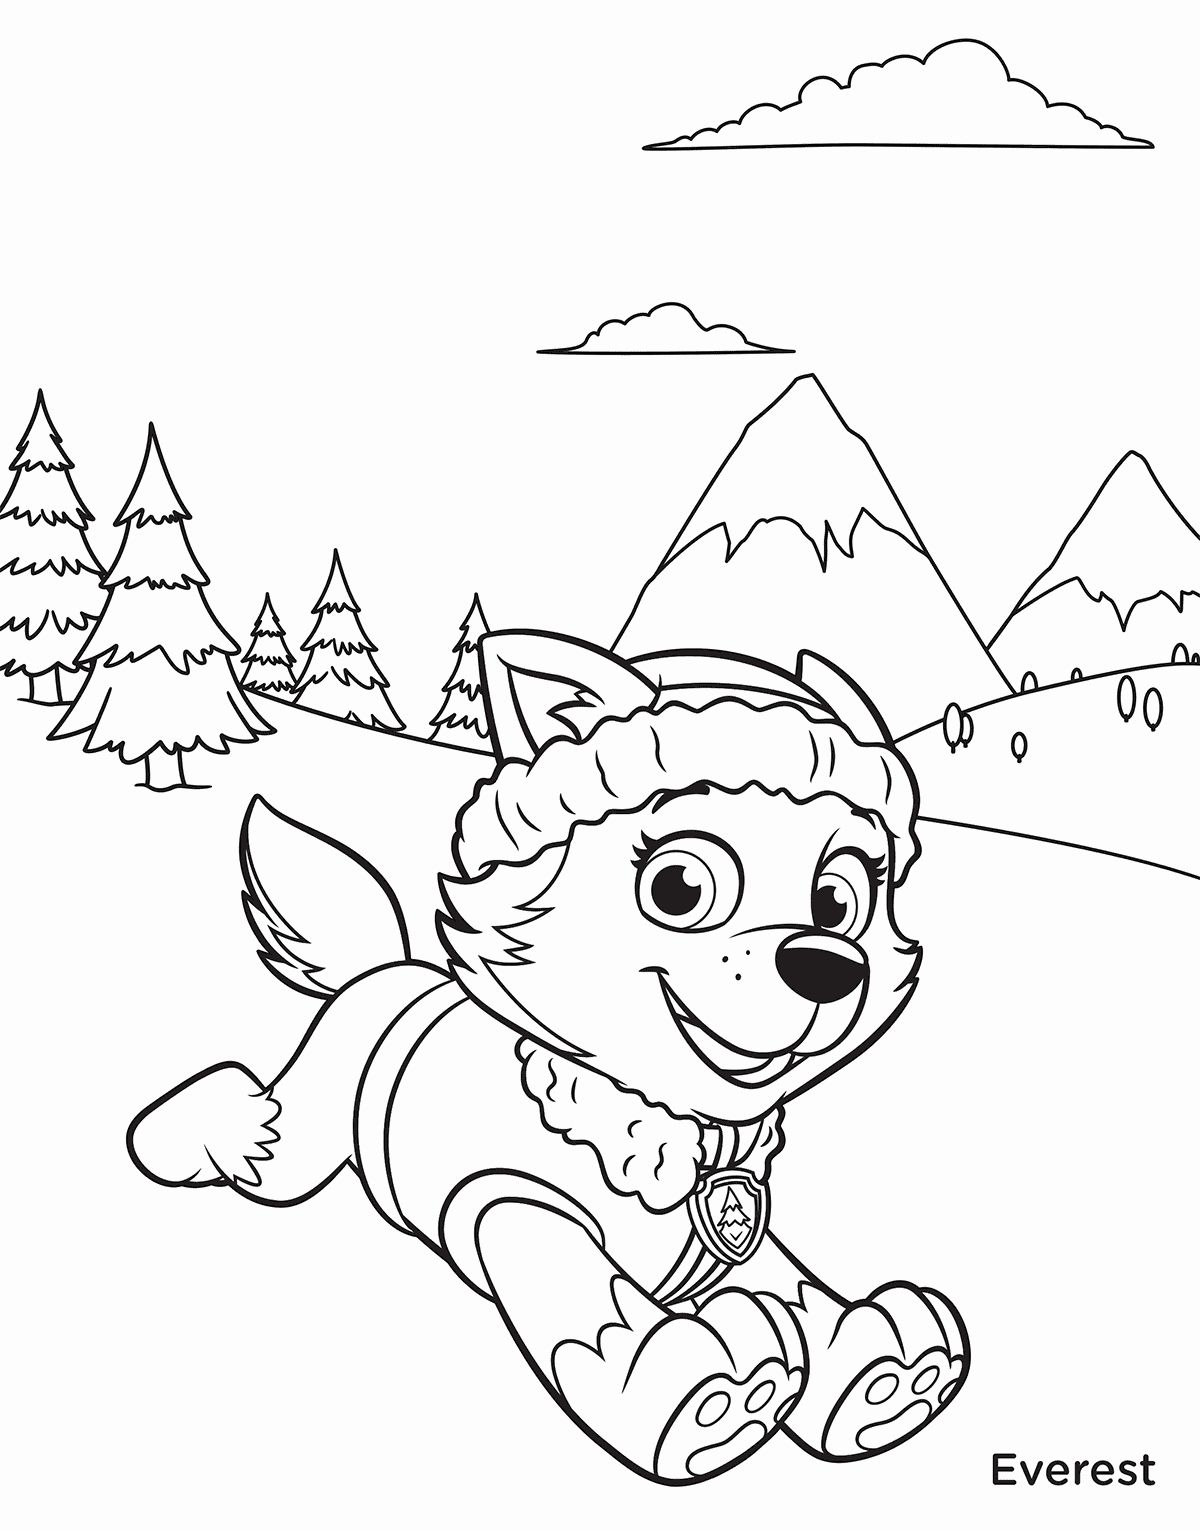 everest paw patrol coloring everest from paw patrol coloring page free coloring coloring paw patrol everest